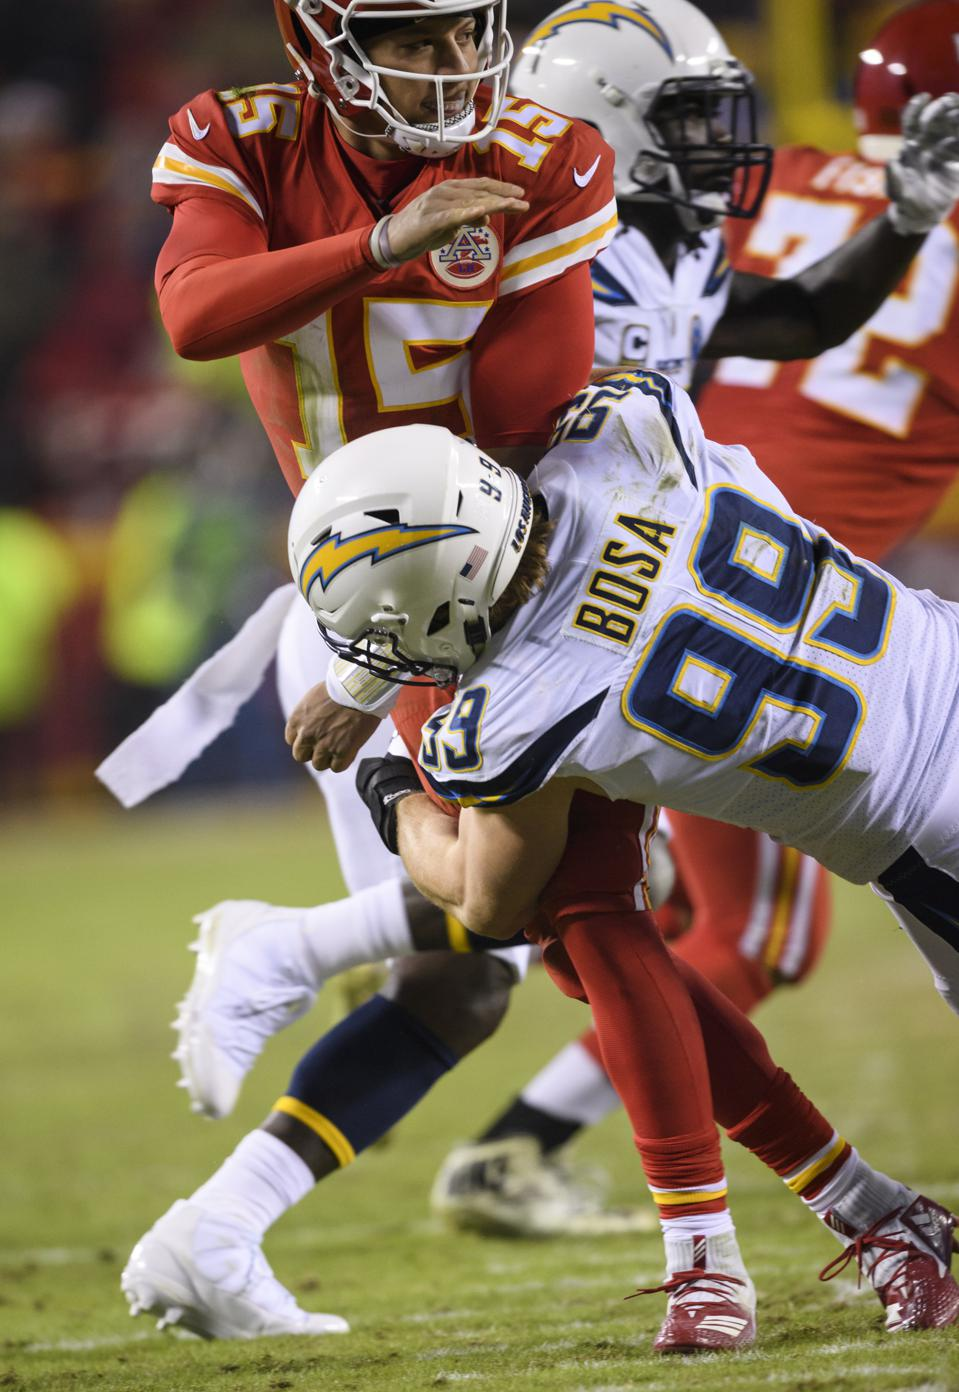 Bosa Returns With A New Number And A Splash Of Hollywood